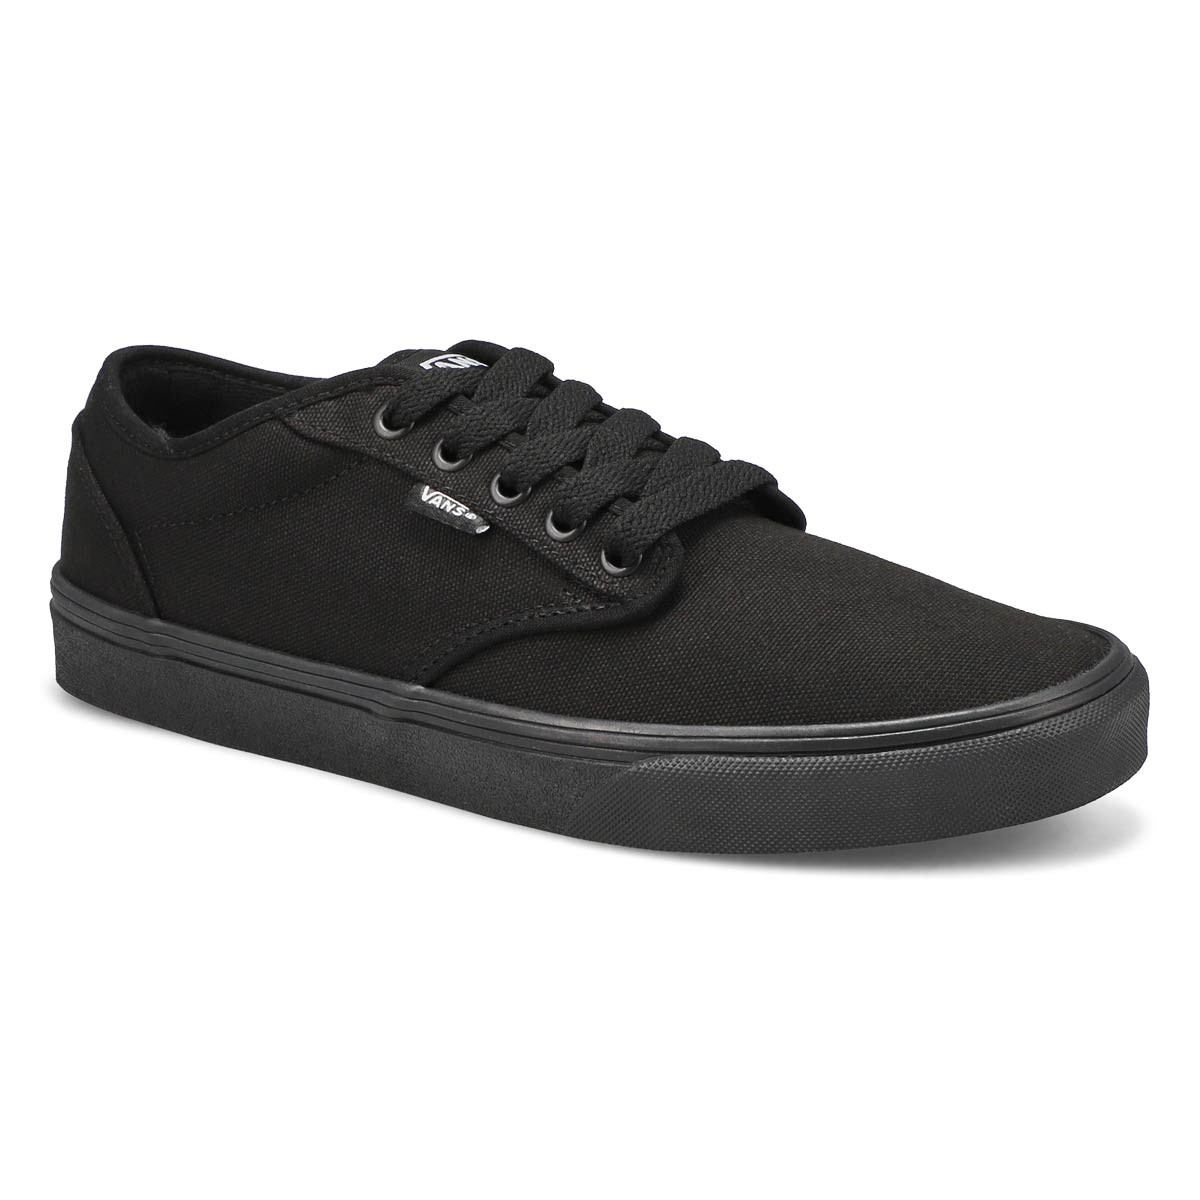 Mns Atwood blk/blk cnvs lace up sneaker